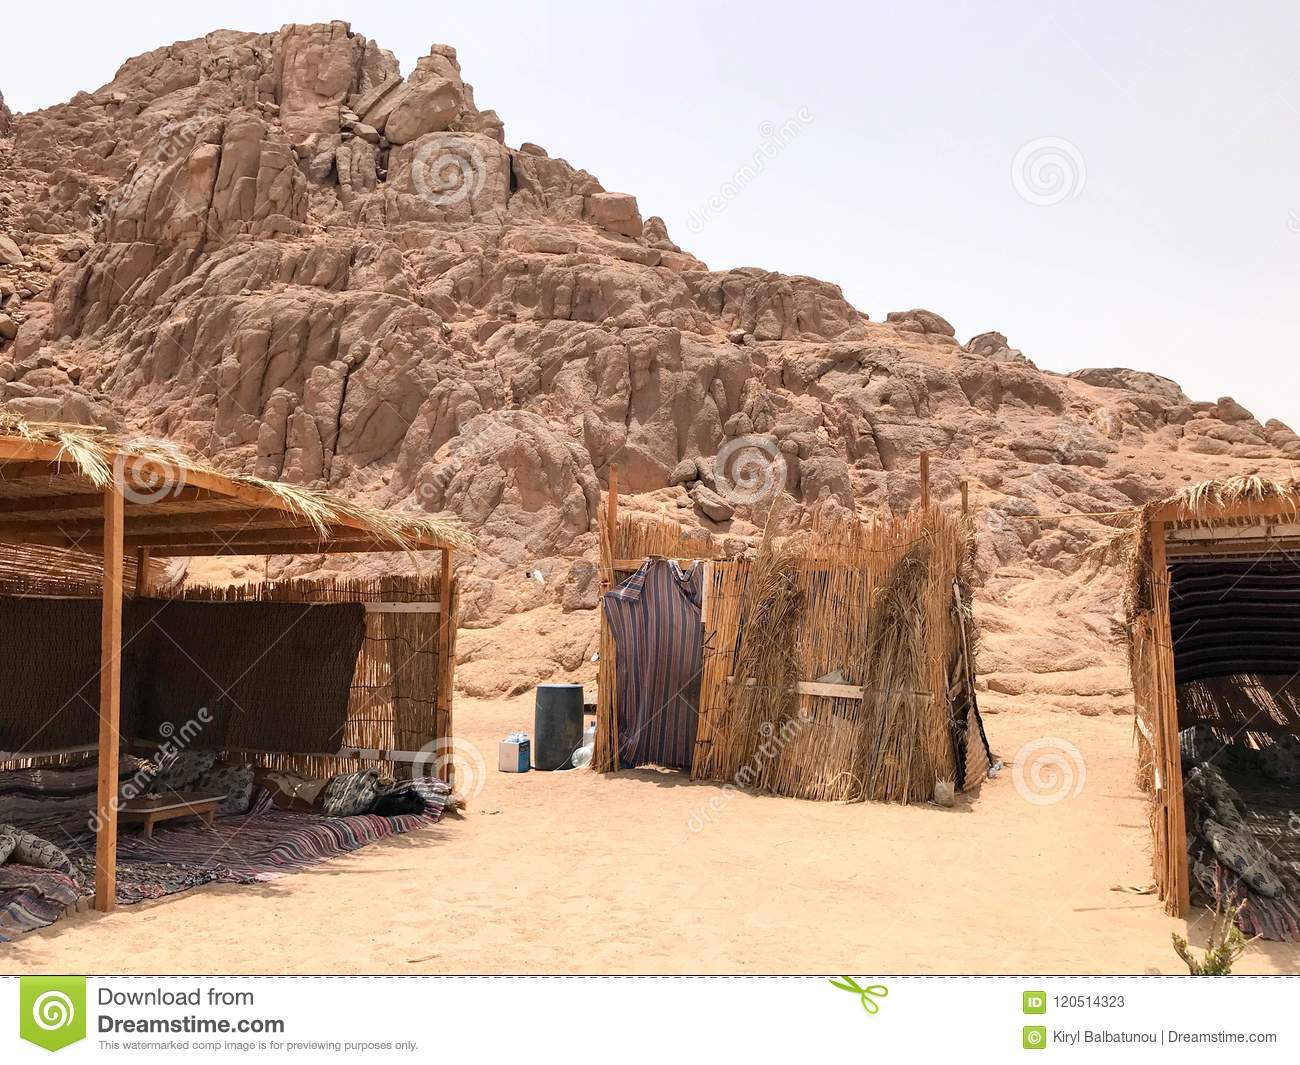 A flimsy, dilapidated decrepit, fragile, fragile poor dwelling, a Bedouin building made of straw, twigs in a sandy hot desert in t